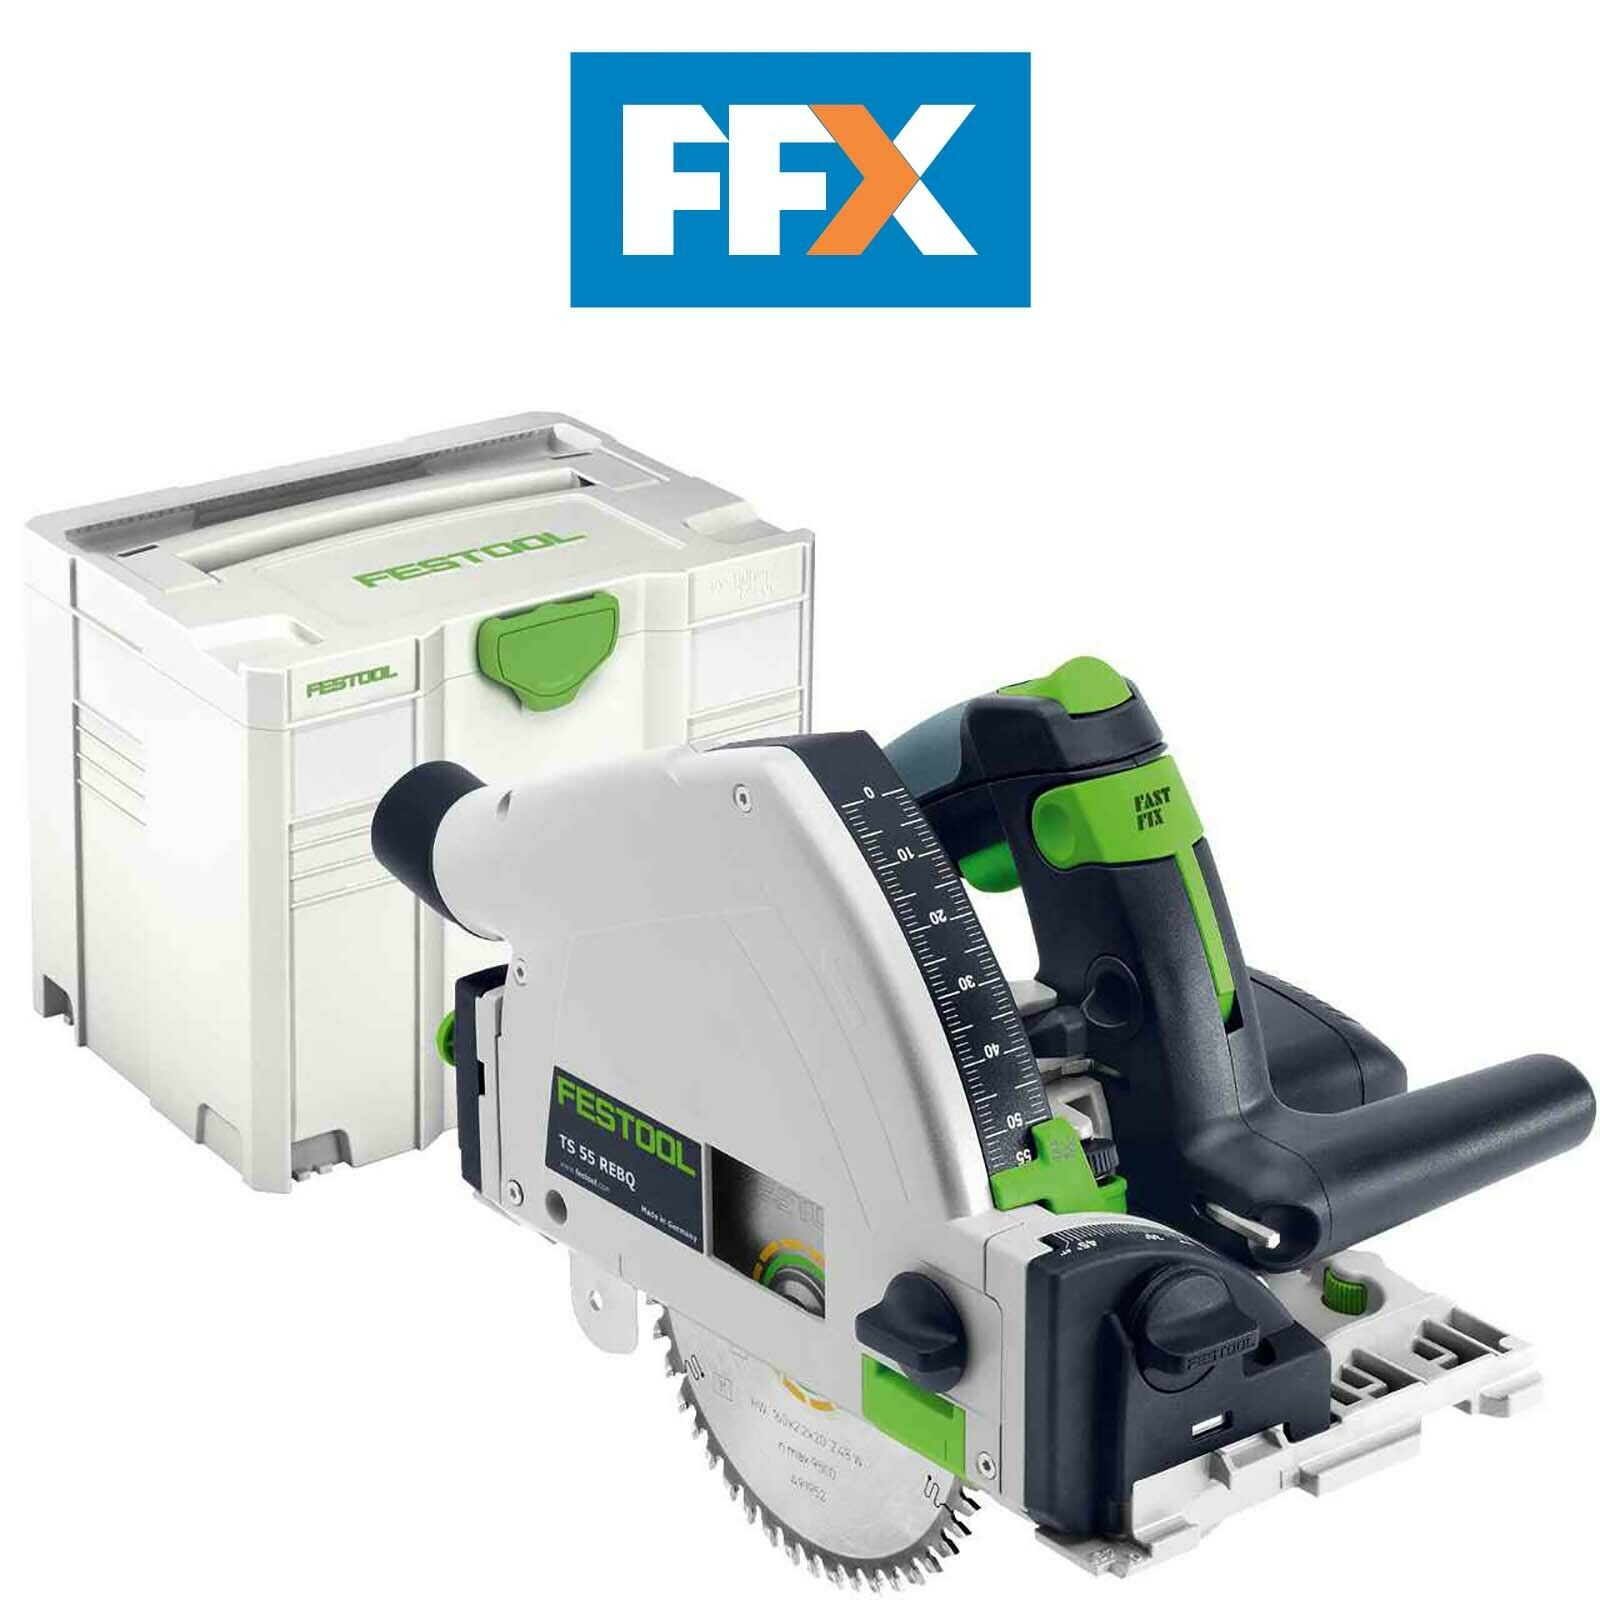 festool 561553 ts55rebq-plus 240v circular/plunge saw in systainer